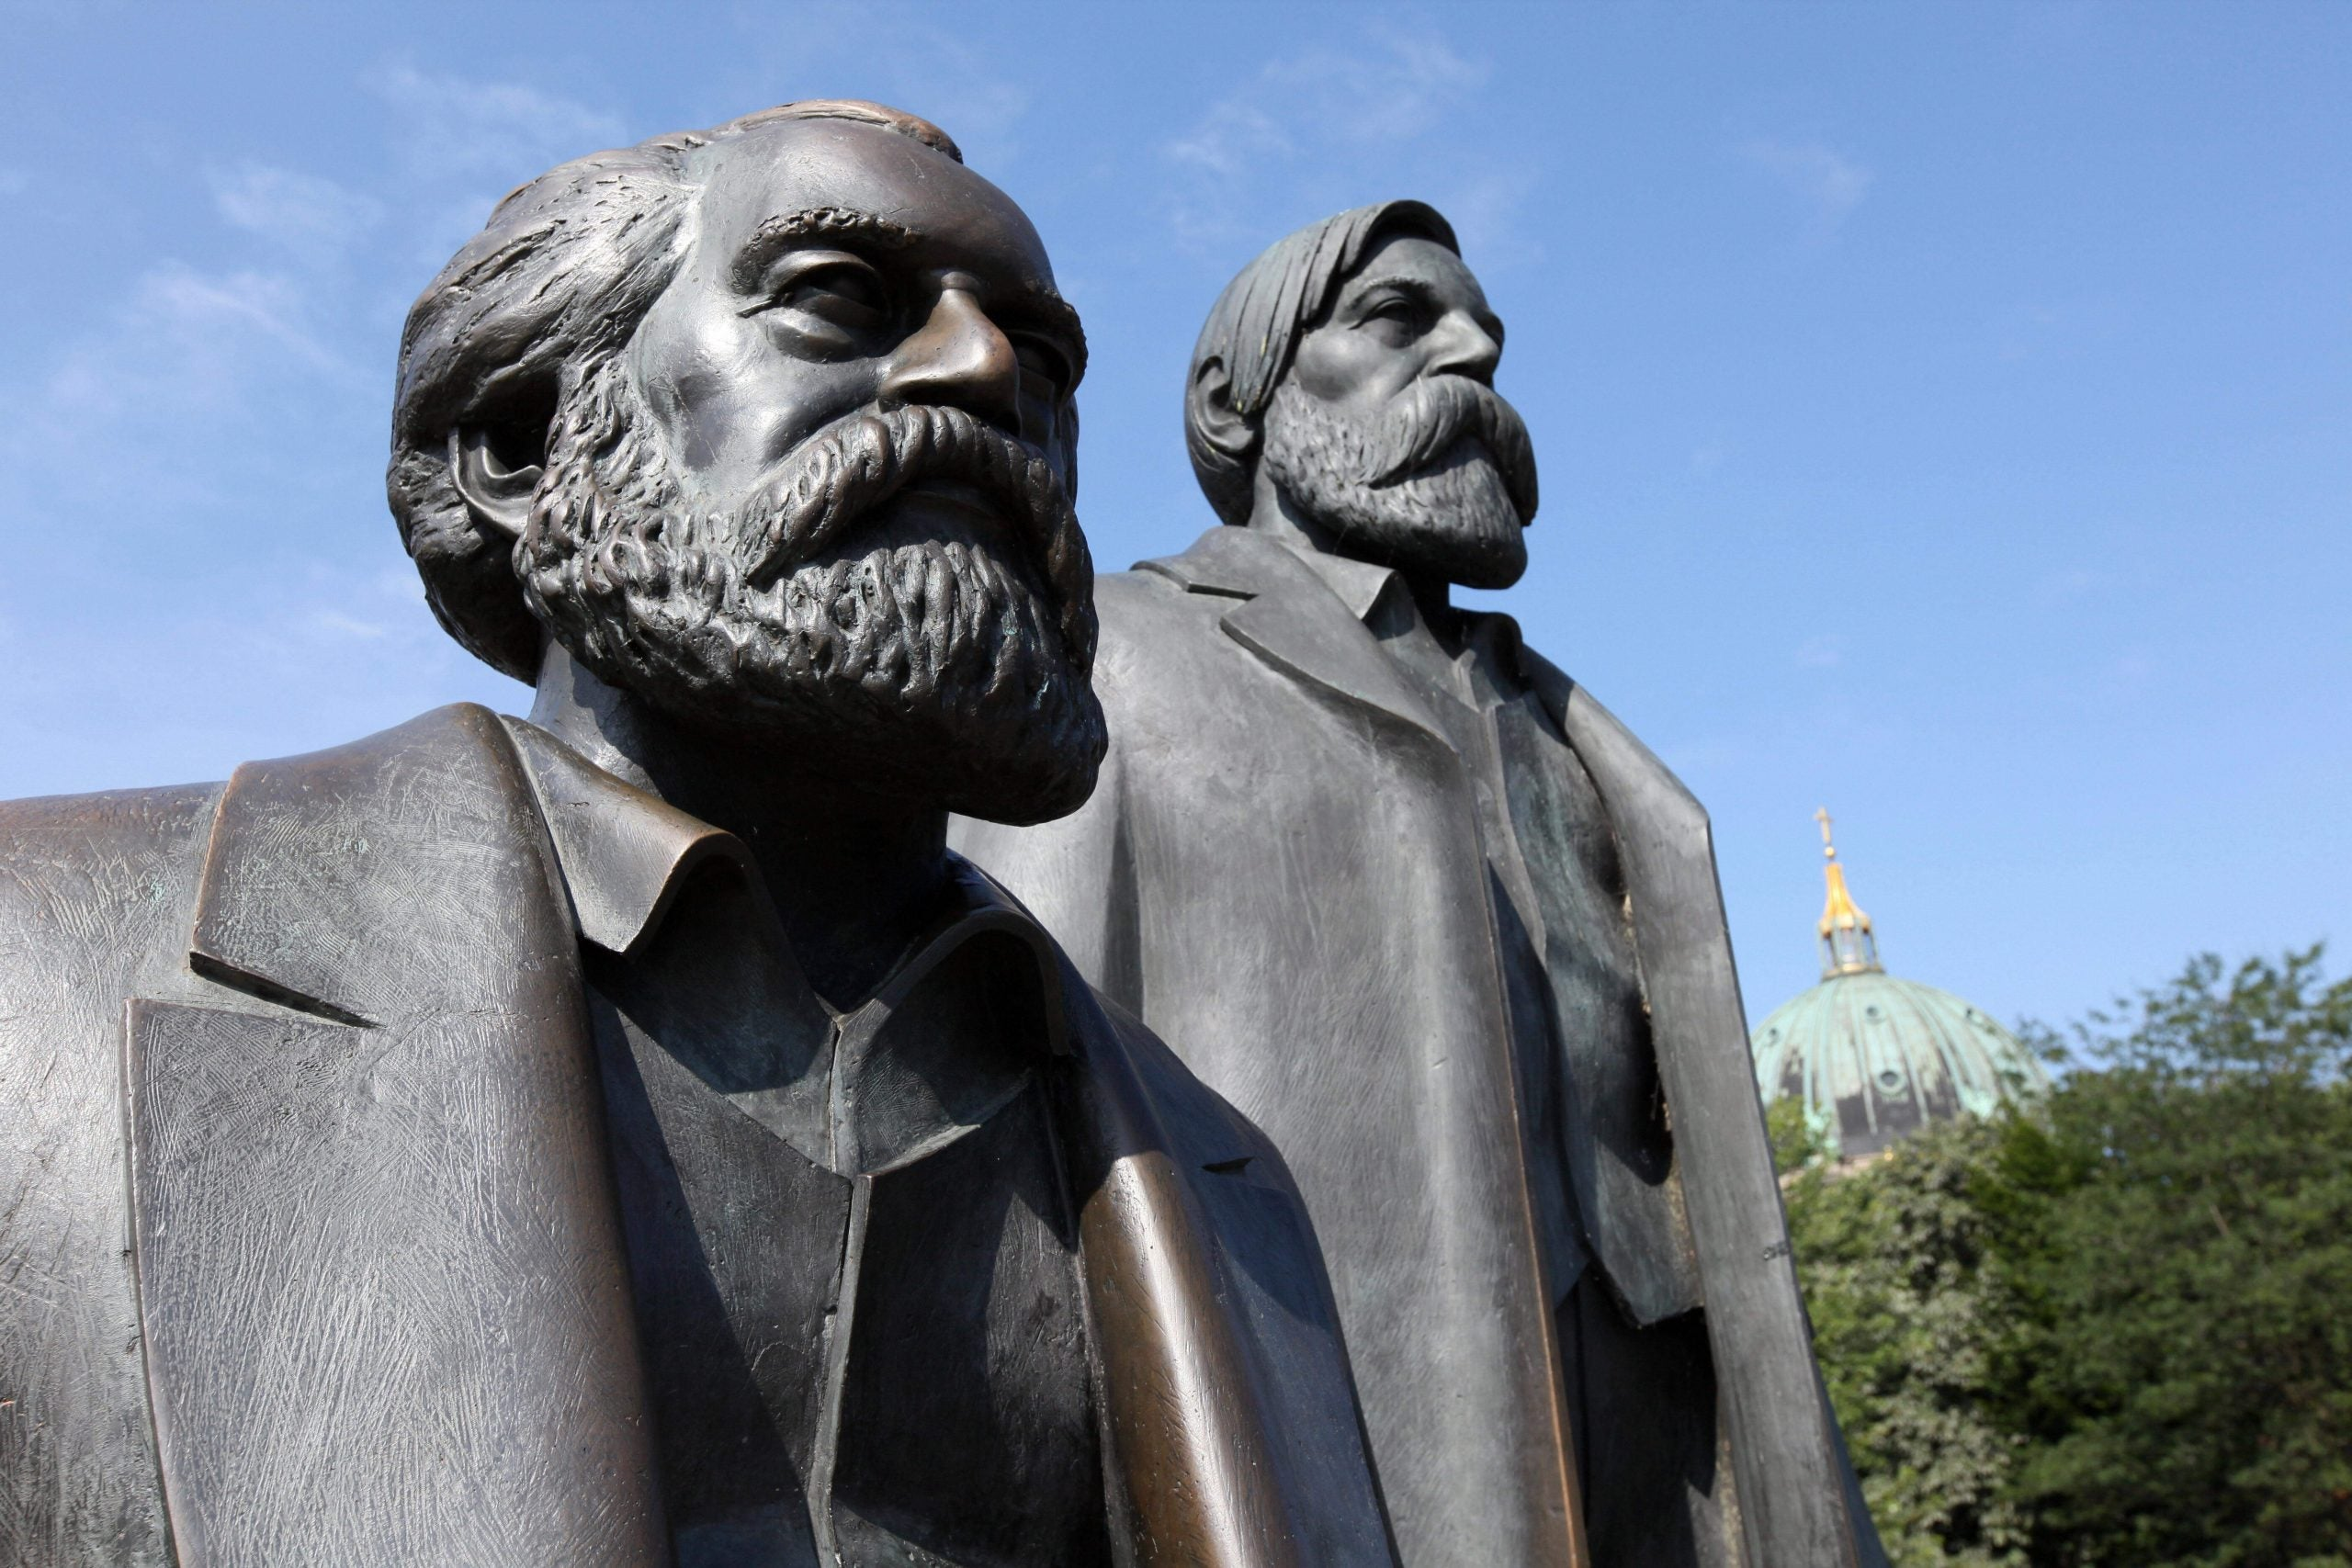 I'm a Marxist – we are misunderstood on both the left and right